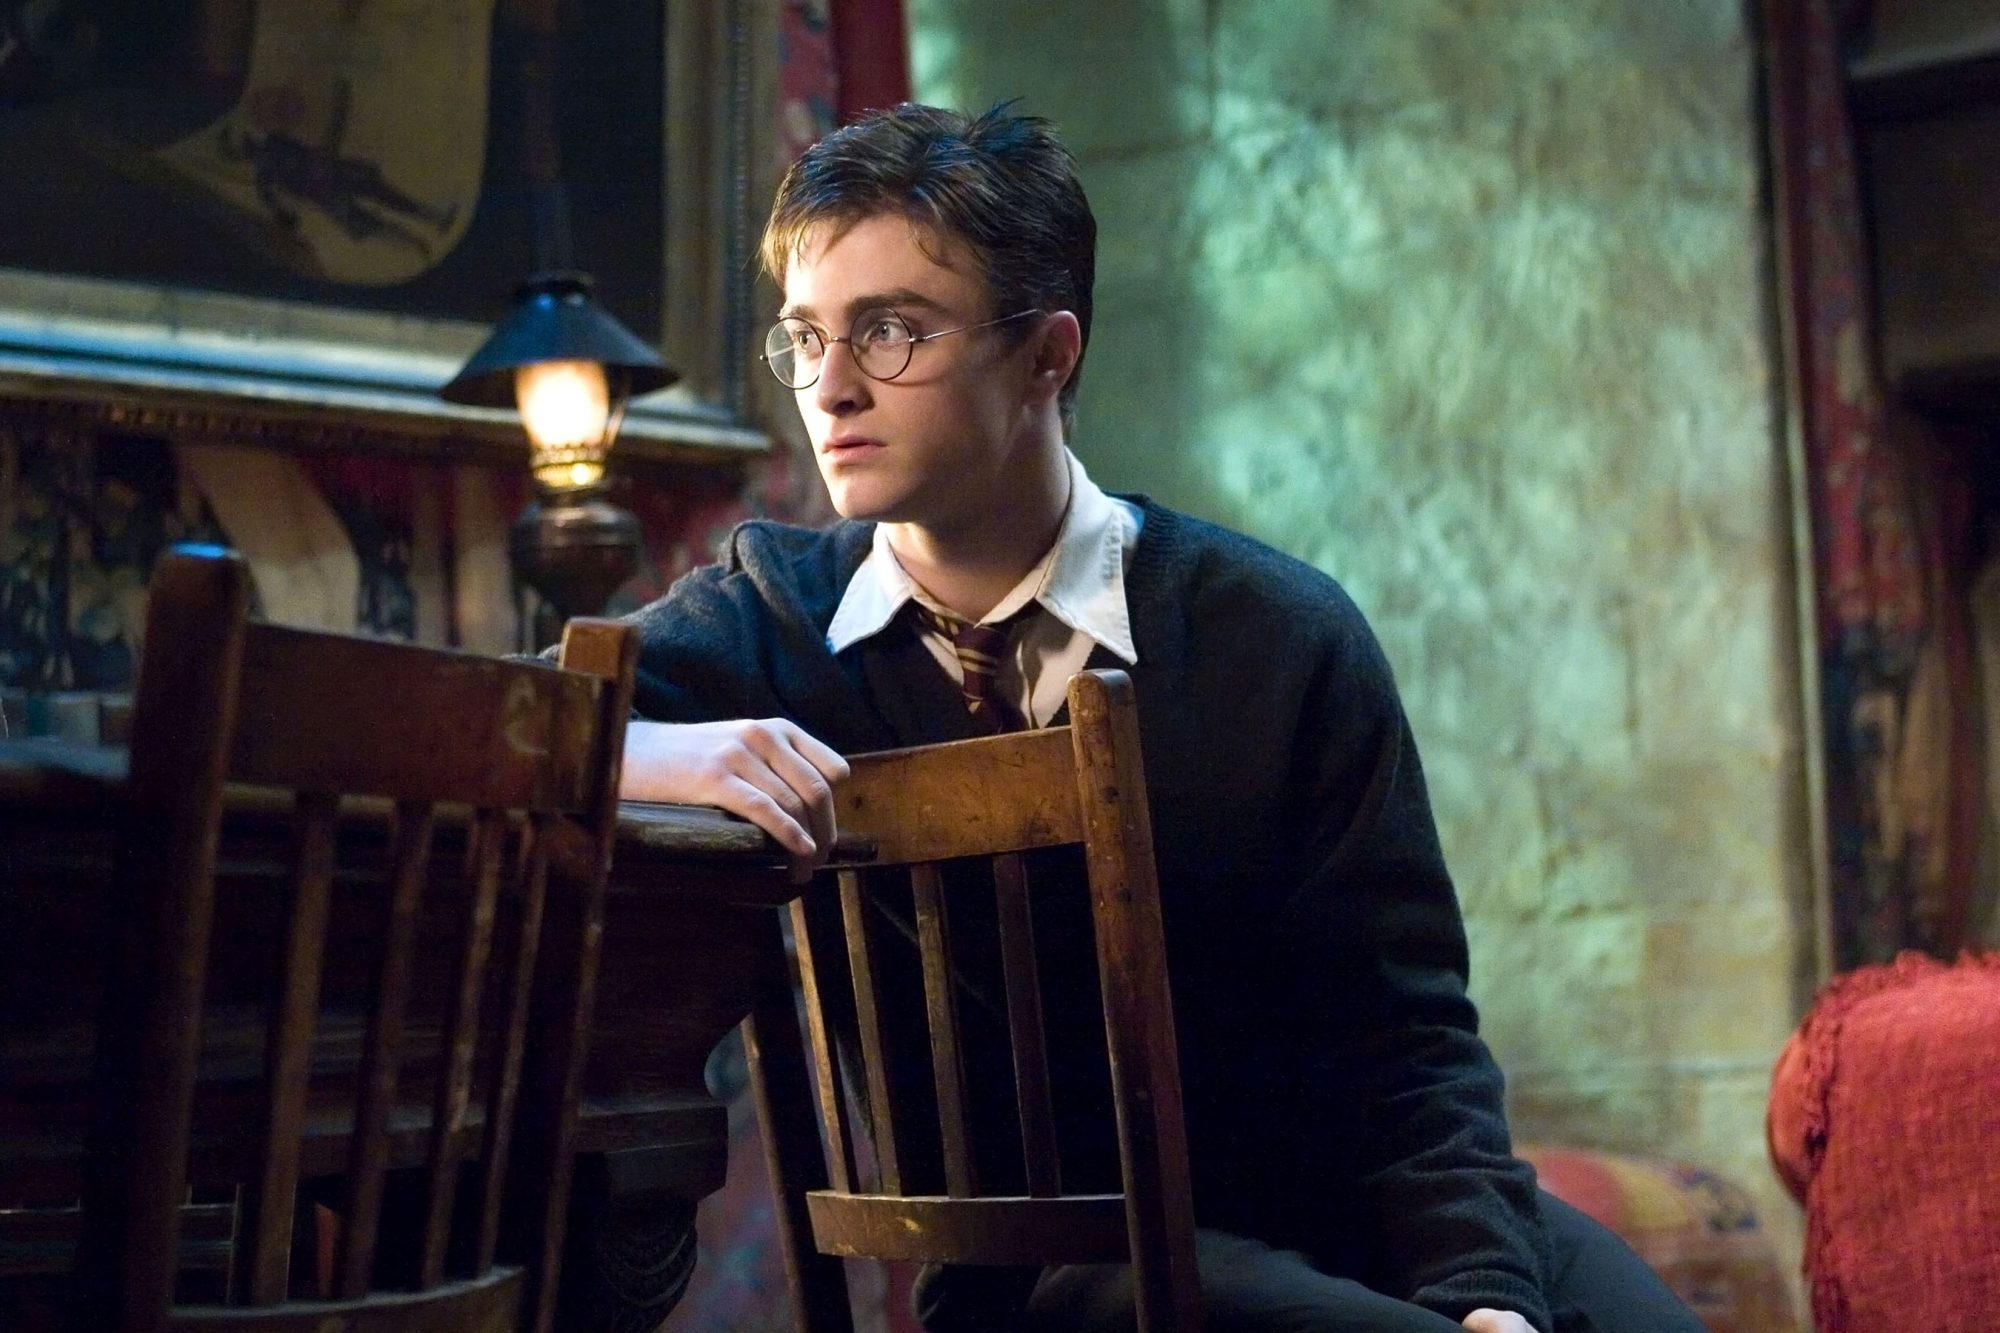 HARRY POTTER AND THE ORDER OF THE PHOENIX, Daniel Radcliffe, 2007. ©Warner Bros./Courtesy Everett Co